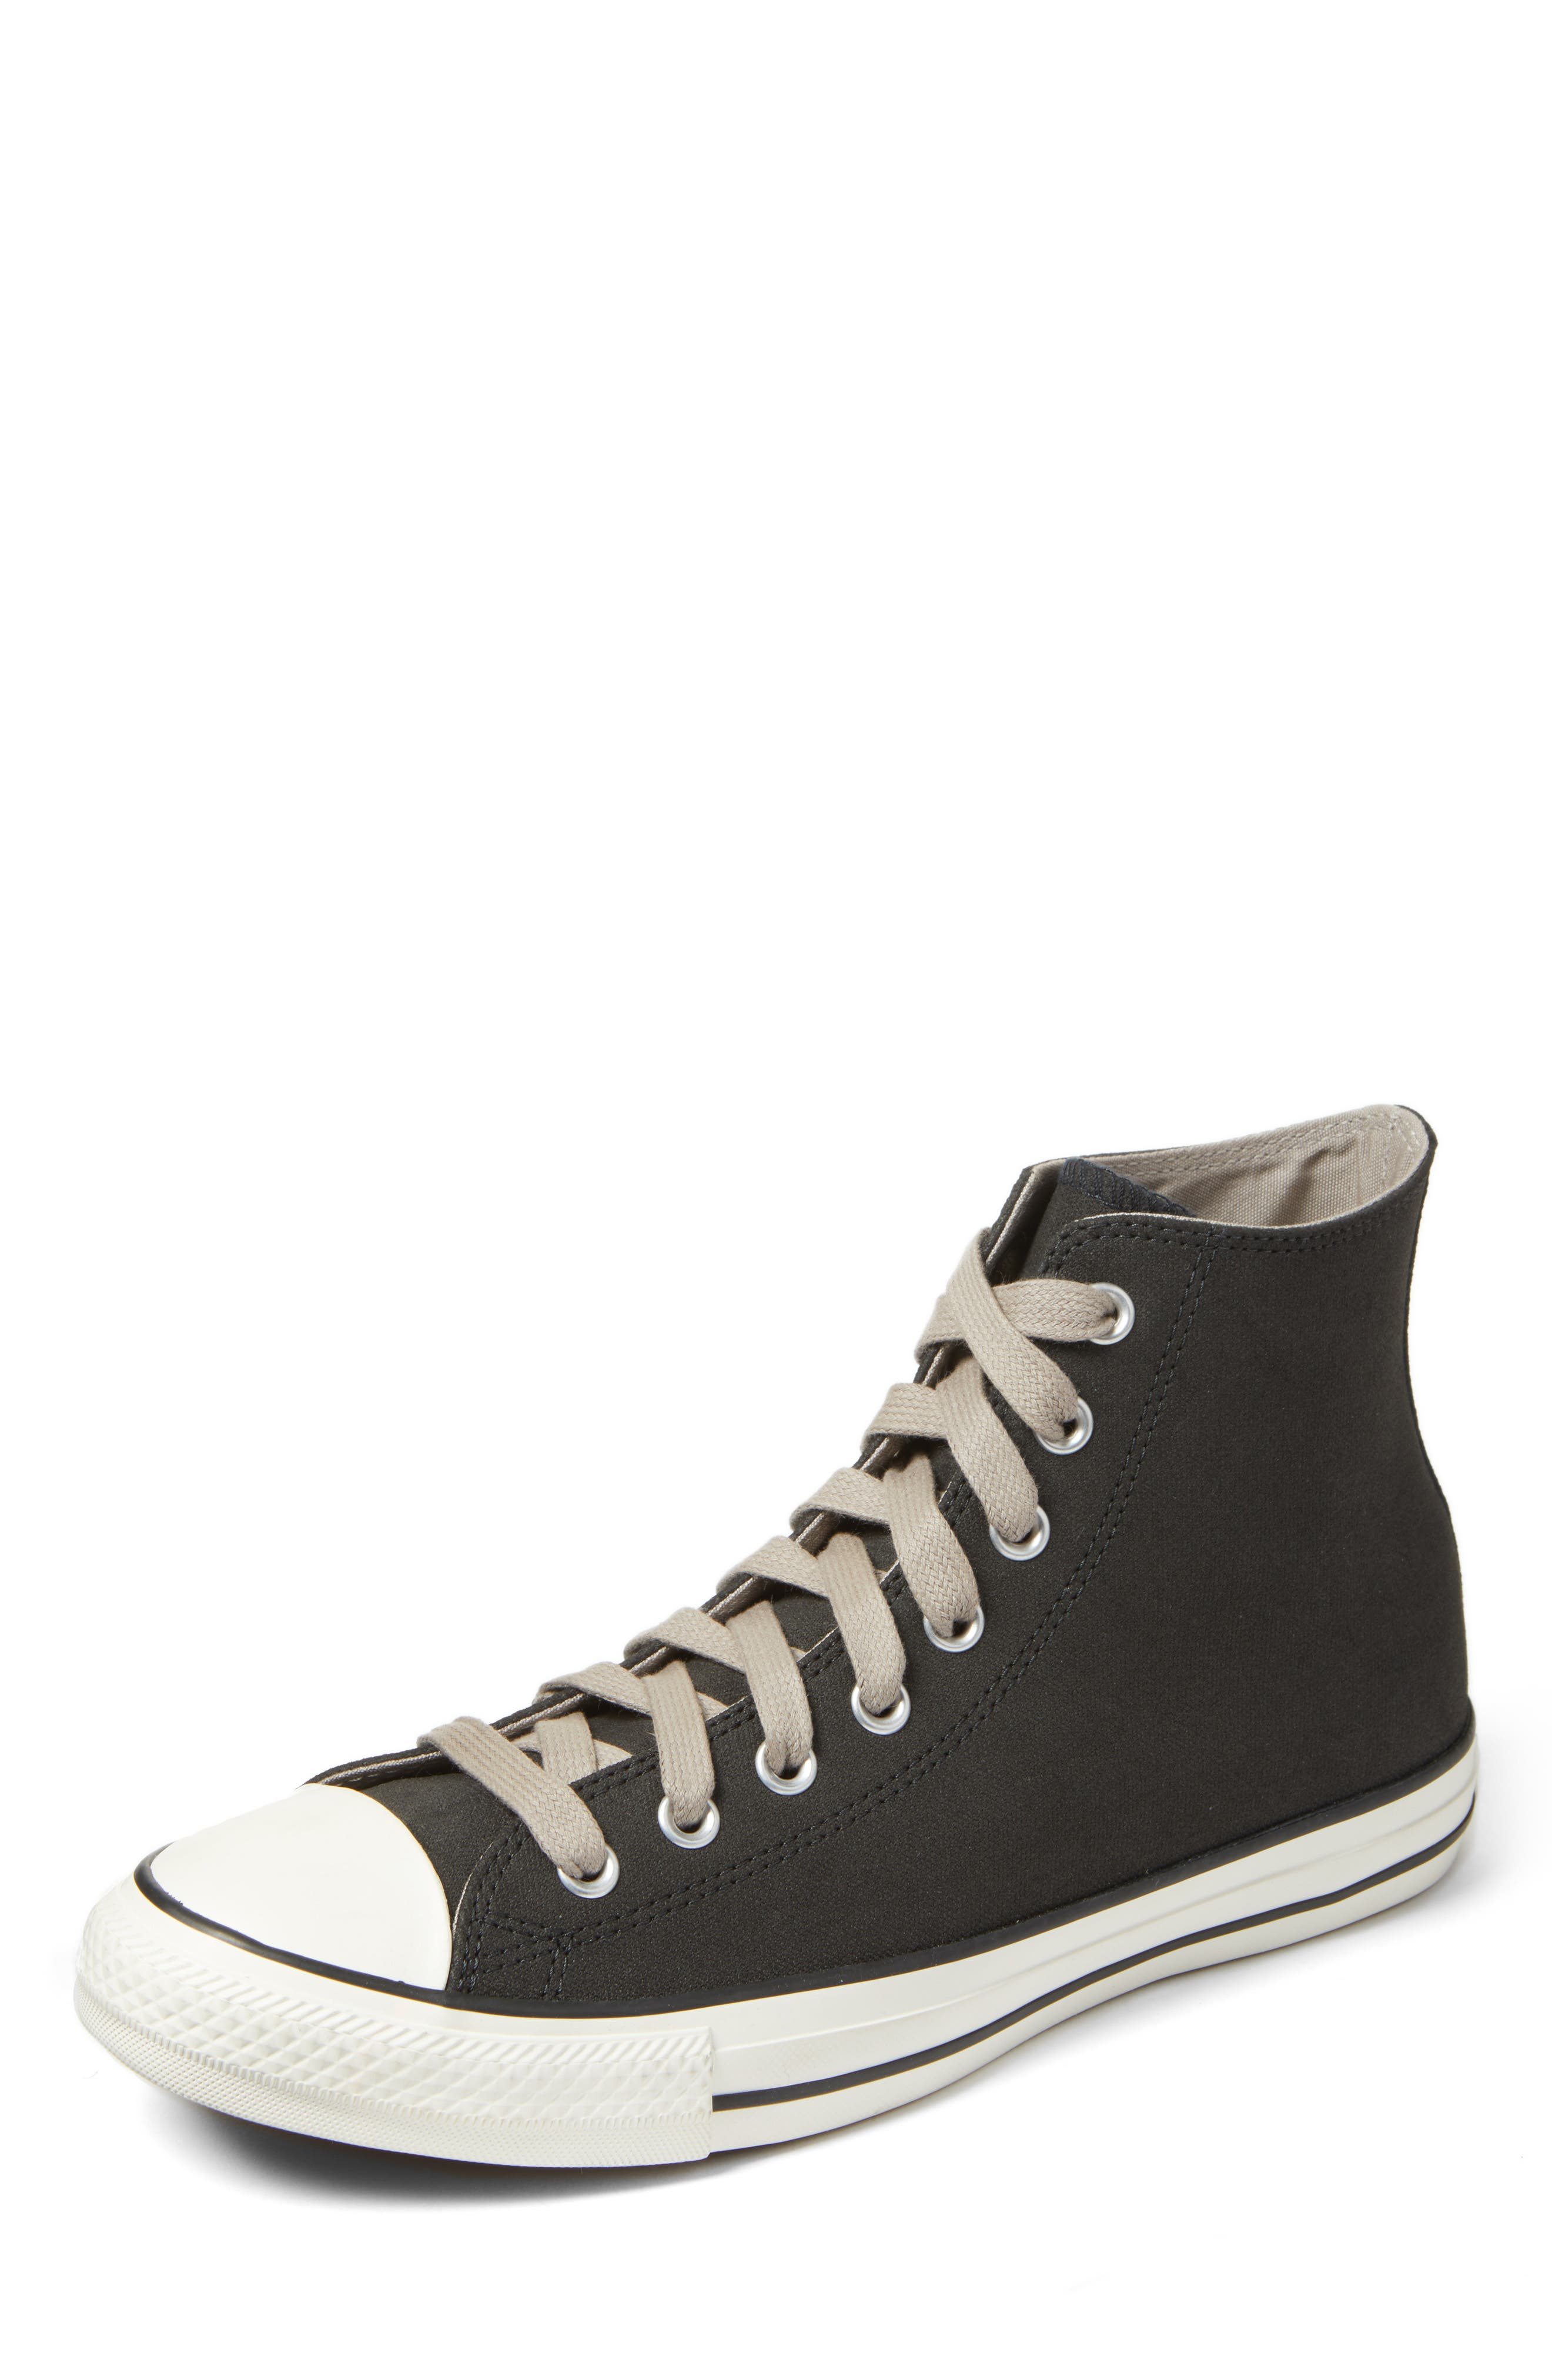 Chuck Taylor<sup>®</sup> All Star<sup>®</sup> Hi Sneaker,                         Main,                         color, 001